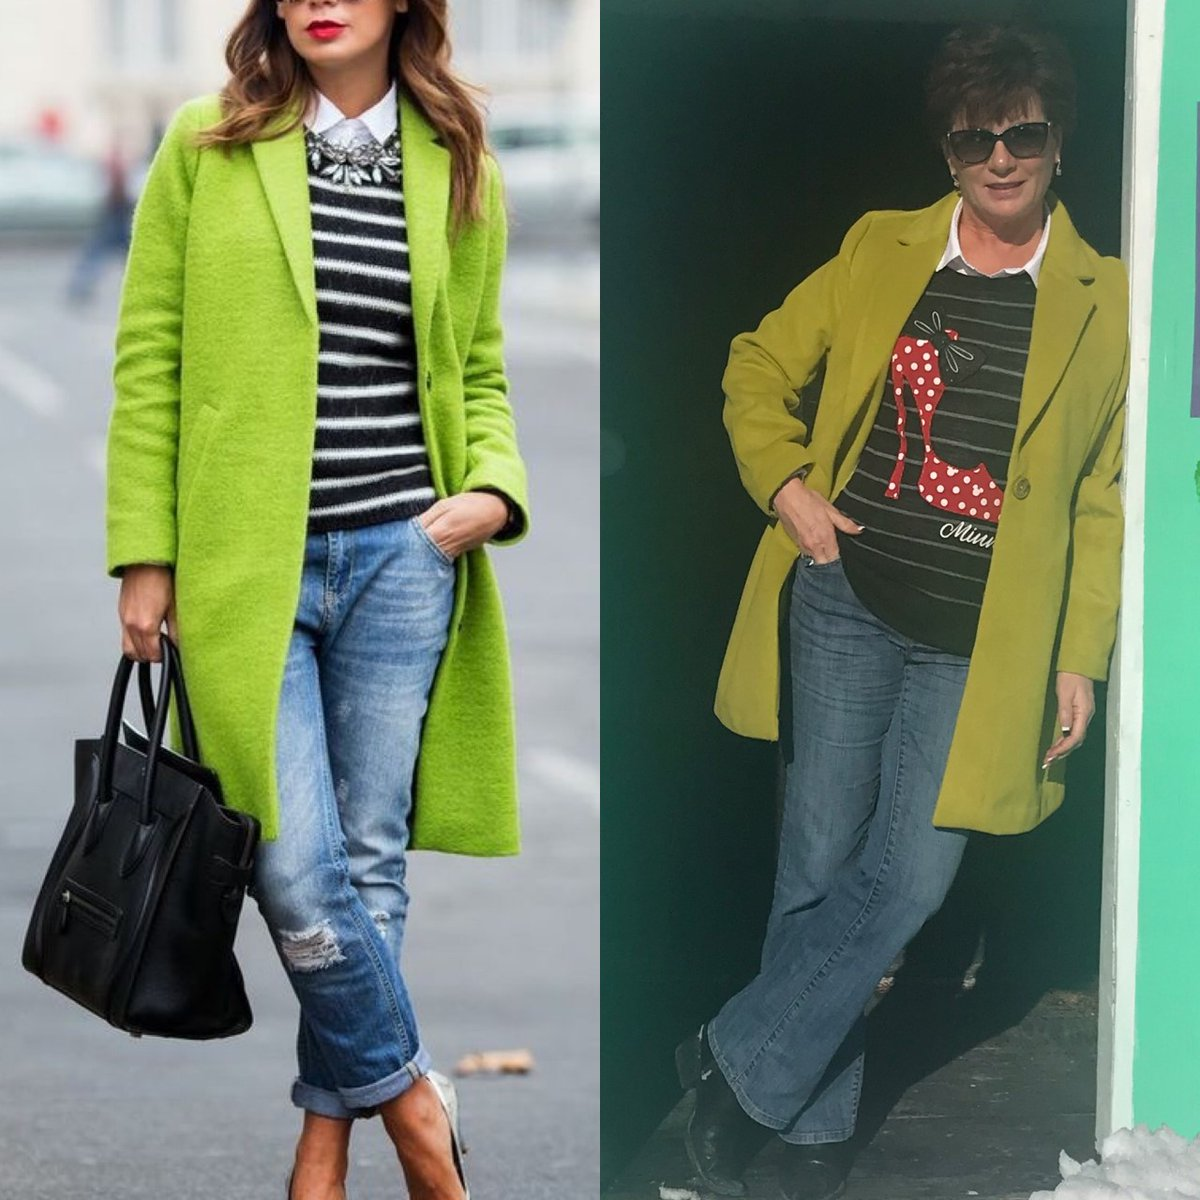 Helen Escott On Twitter The Pinterest Outfit On The Left Caught My Eye Because Of The Bold Lime Green Coat I Found A Similar One At Winners For 35 This Is A